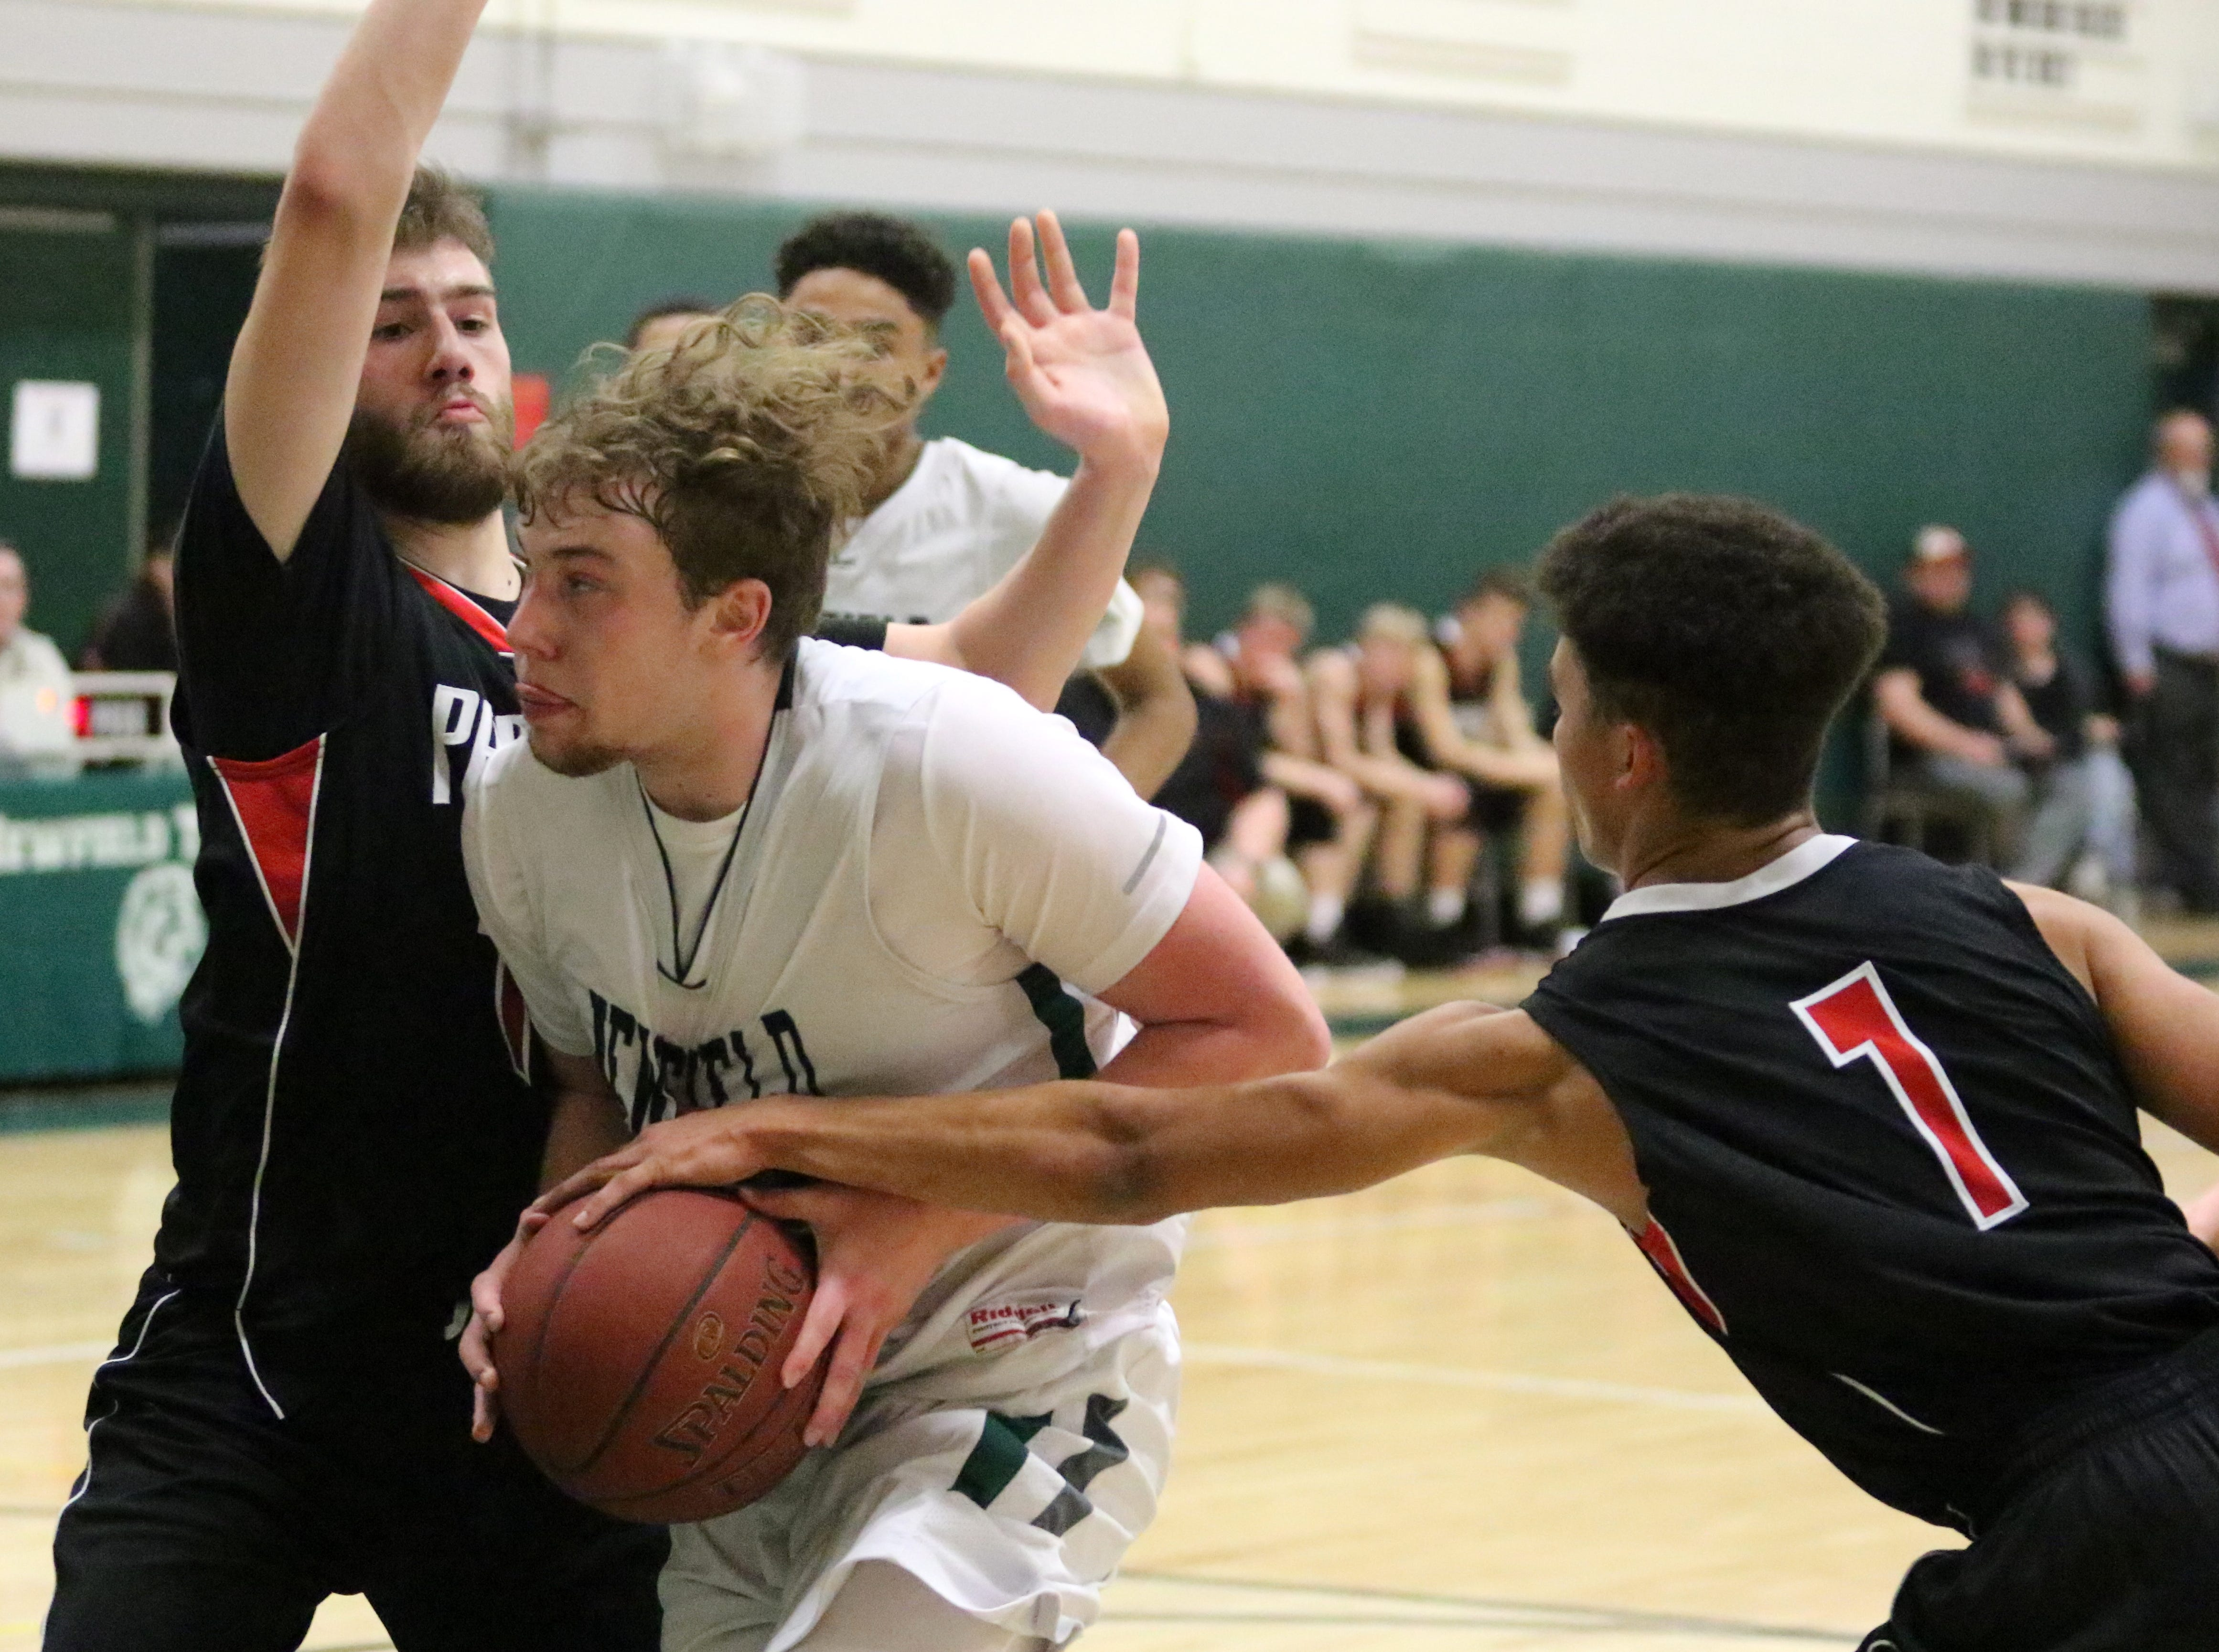 Action from the Newfield boys basketball team's 66-52 home win over Spencer-Van Etten in an IAC South Small School boys basketball tiebreaker Feb. 13, 2019.